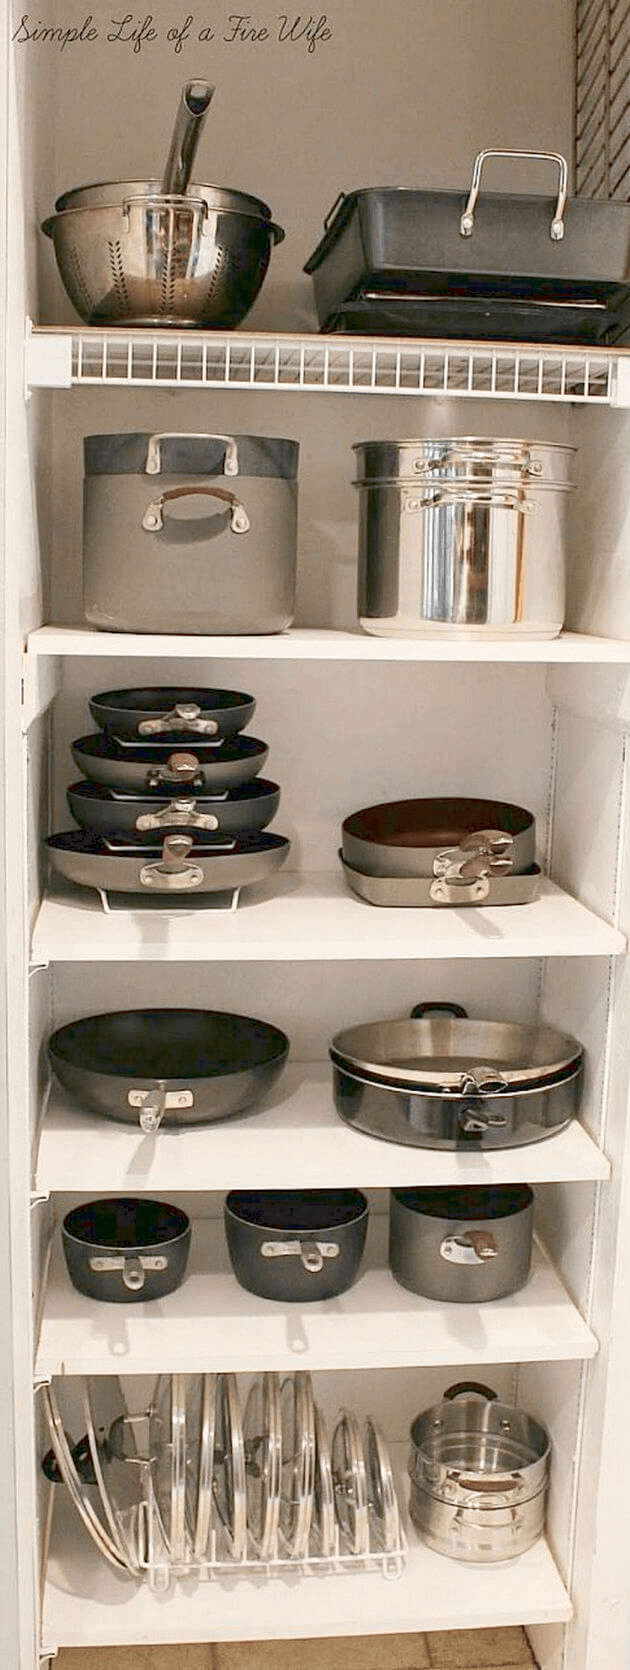 PANTRY STORAGE ORGANIZATION IDEAS